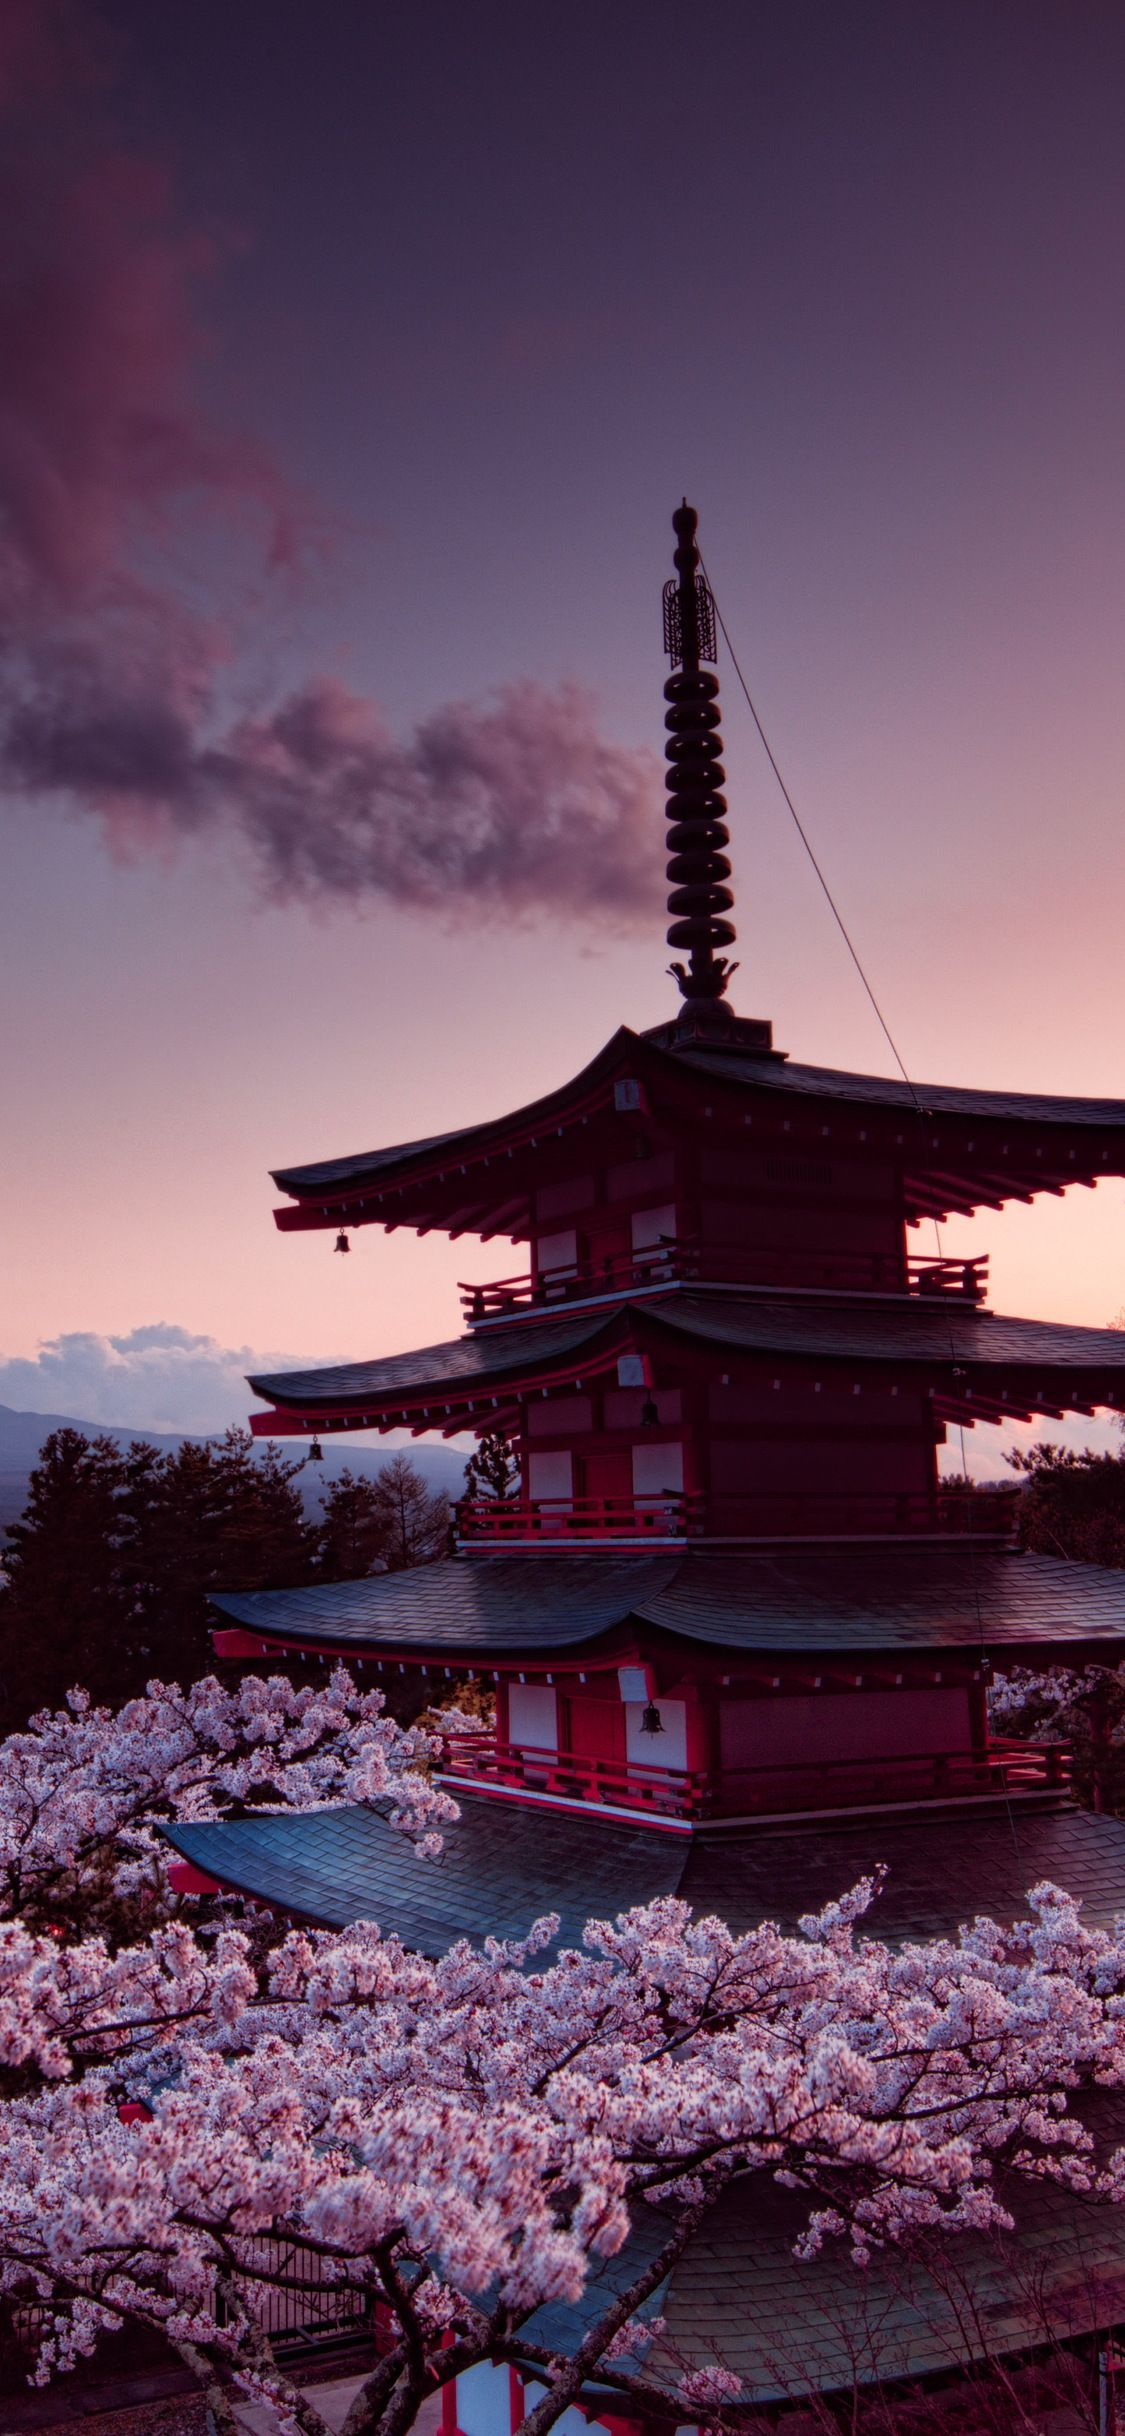 1125x2436 1125x2436 Churei Tower Mount Fuji In Japan 8k Iphone X Iphone 10 Hd Japanese Wallpaper Iphone Iphone Wallpaper Japan Iphone Wallpaper Stills